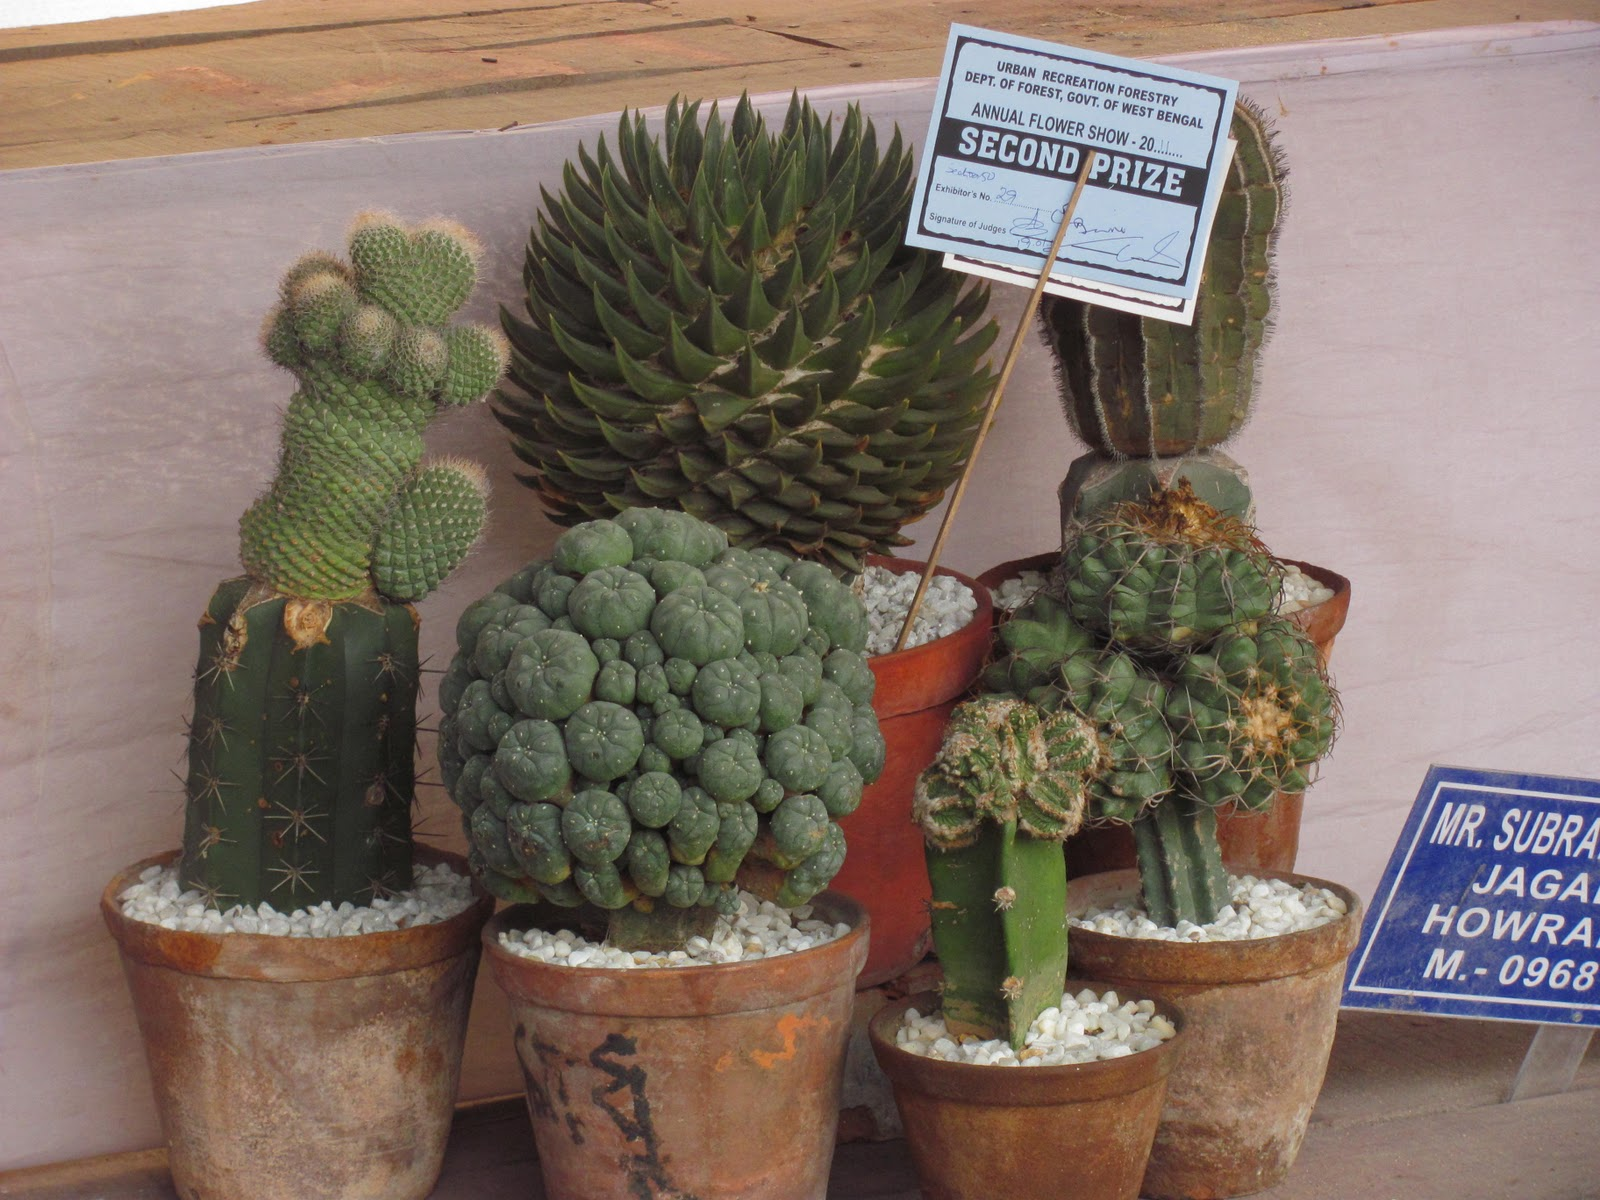 Own Cactus Cactus At Eden Garden Flower Show Jan 2011 At Kolkata